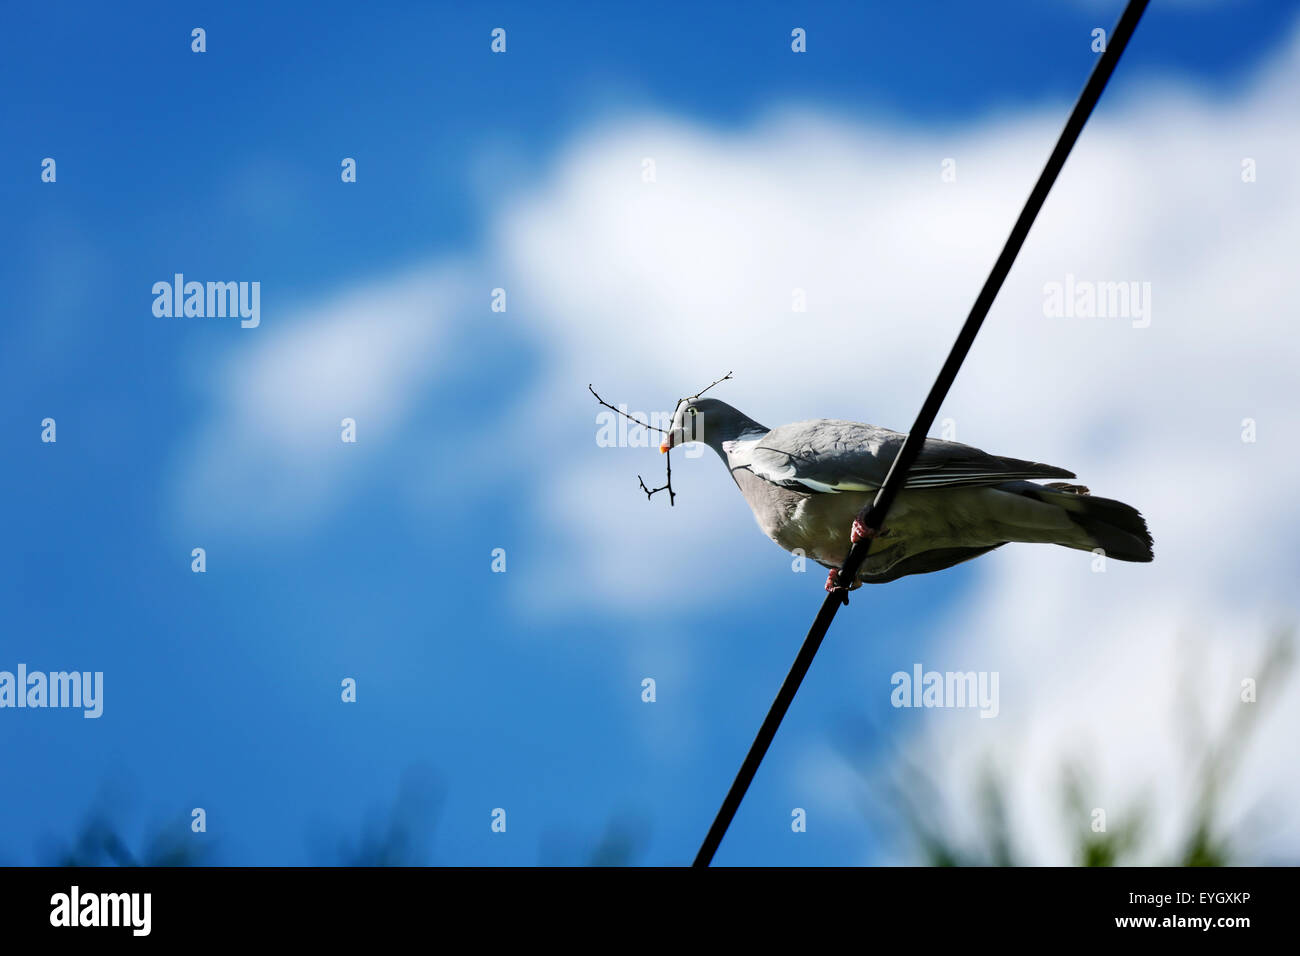 A Wood Pigeon, resting an overhead electrical cable, holding a twig in its beak as it prepares it's nest - Stock Image